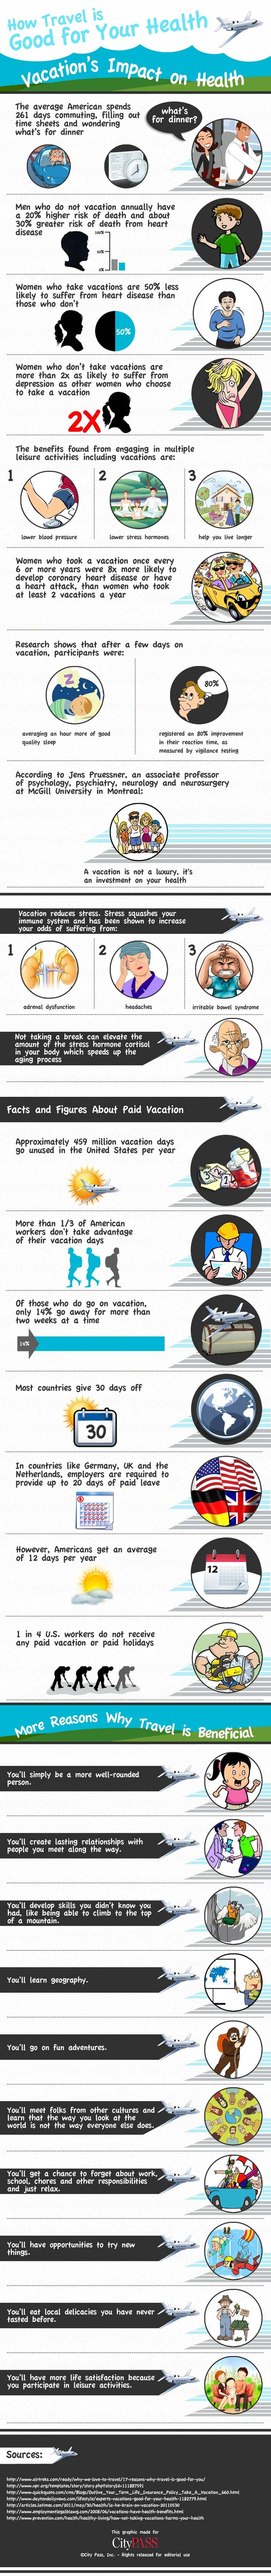 Vacation's impact on health #infographic